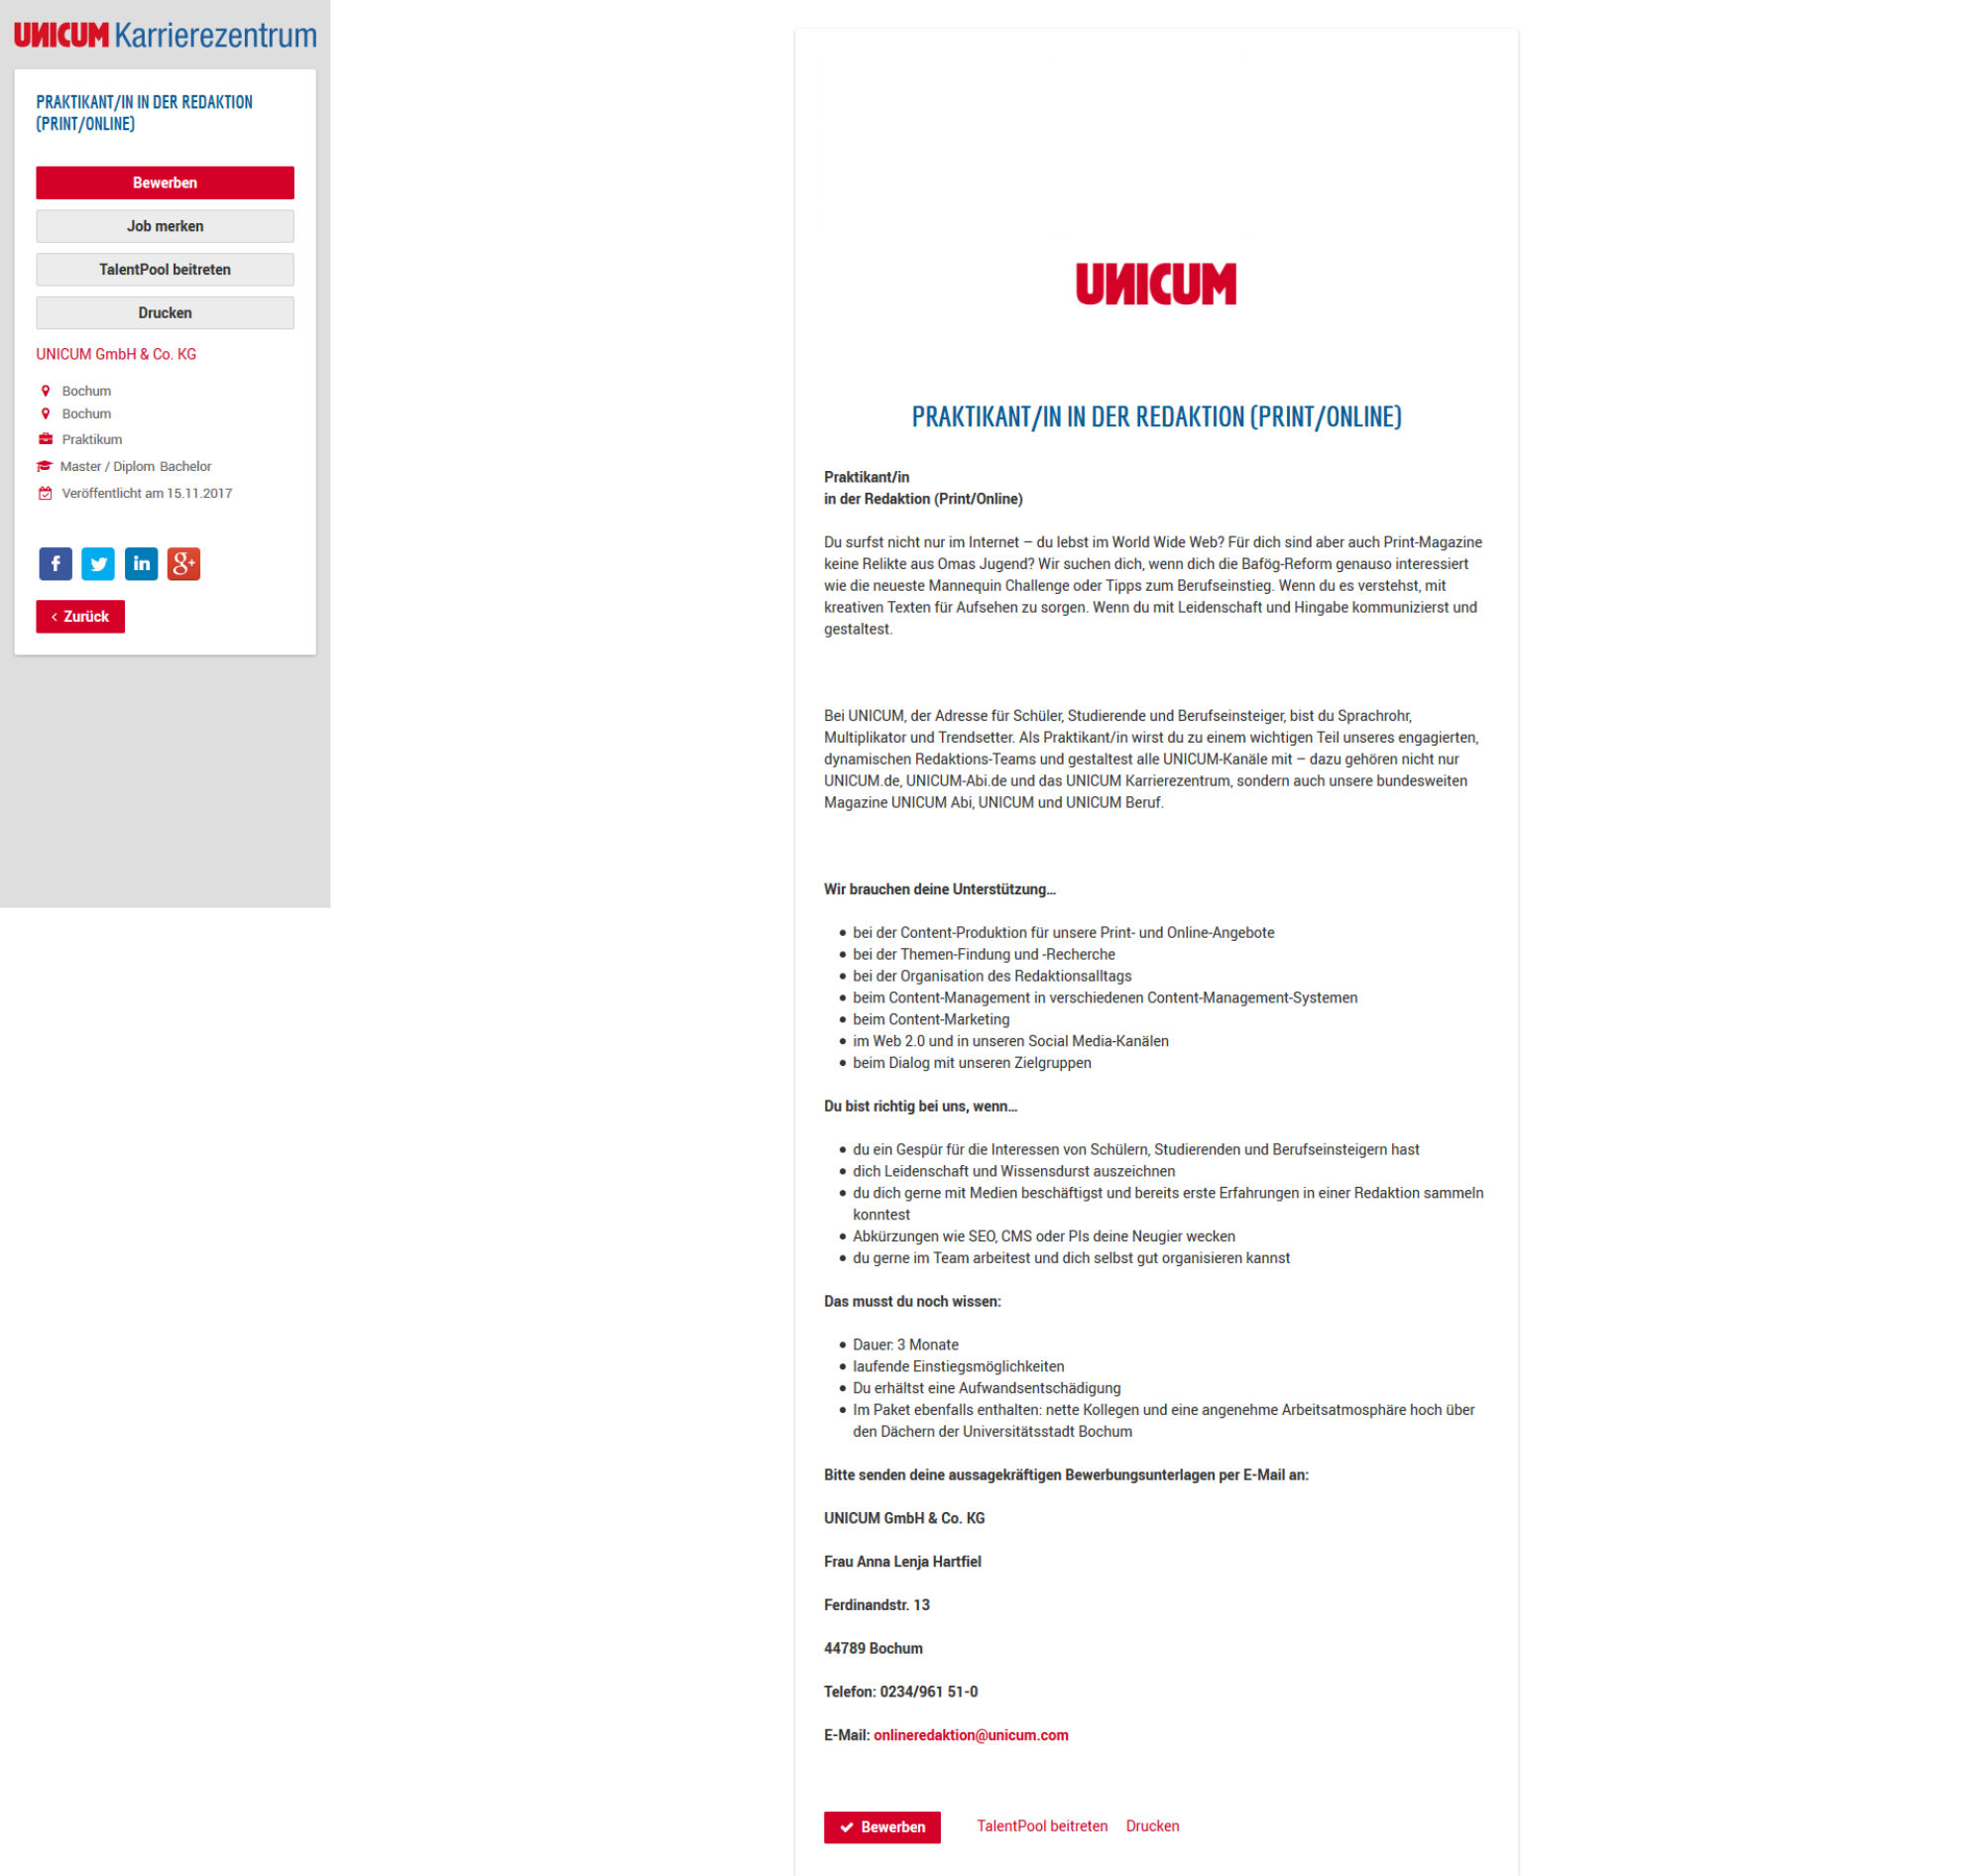 Fantastisch Schneeflockenfarbblatt Ideen - Entry Level Resume ...